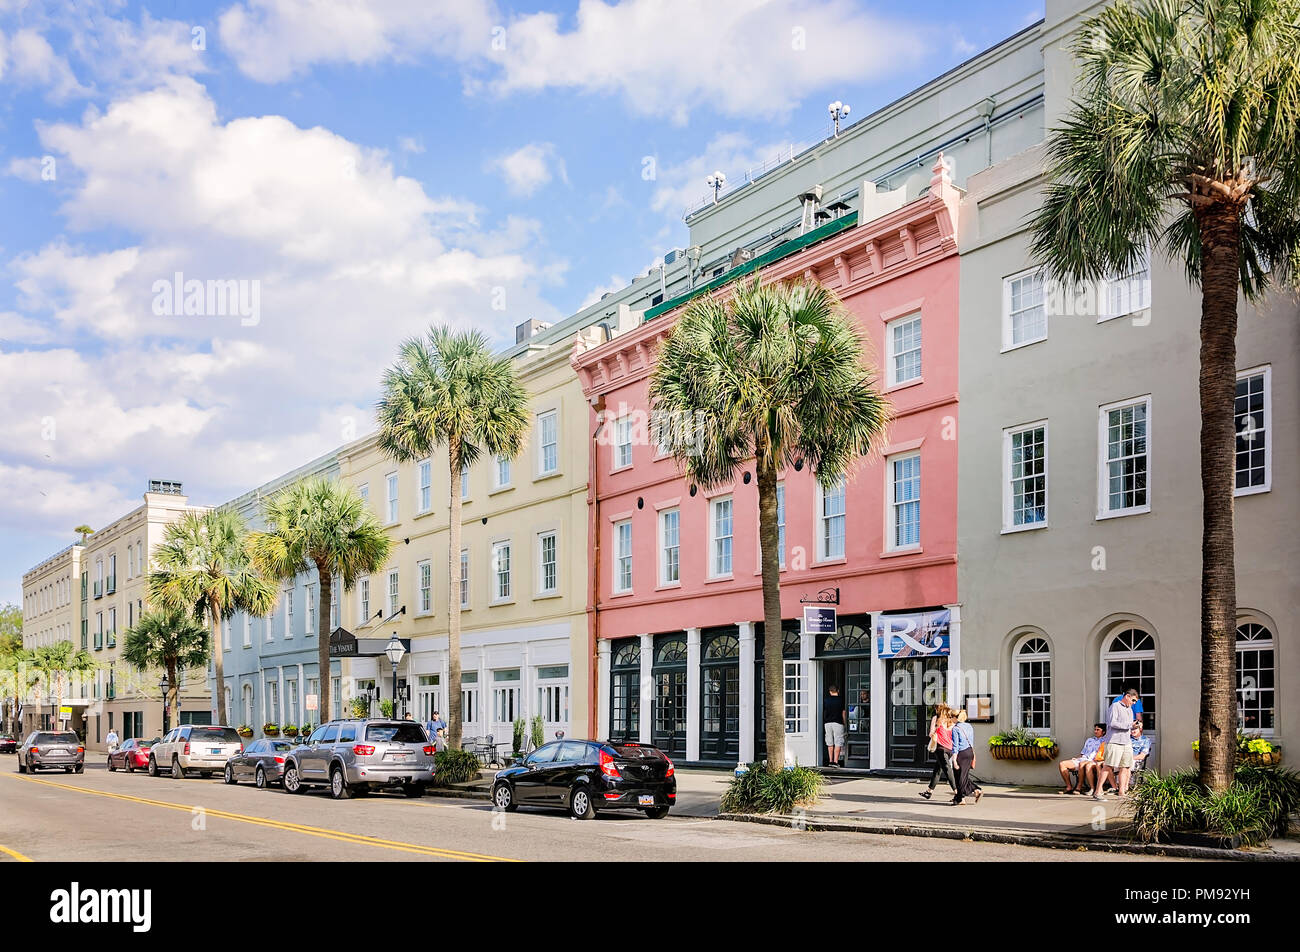 Shops are pictured along Vendue Range, April 5, 2015, in Charleston, South Carolina. - Stock Image